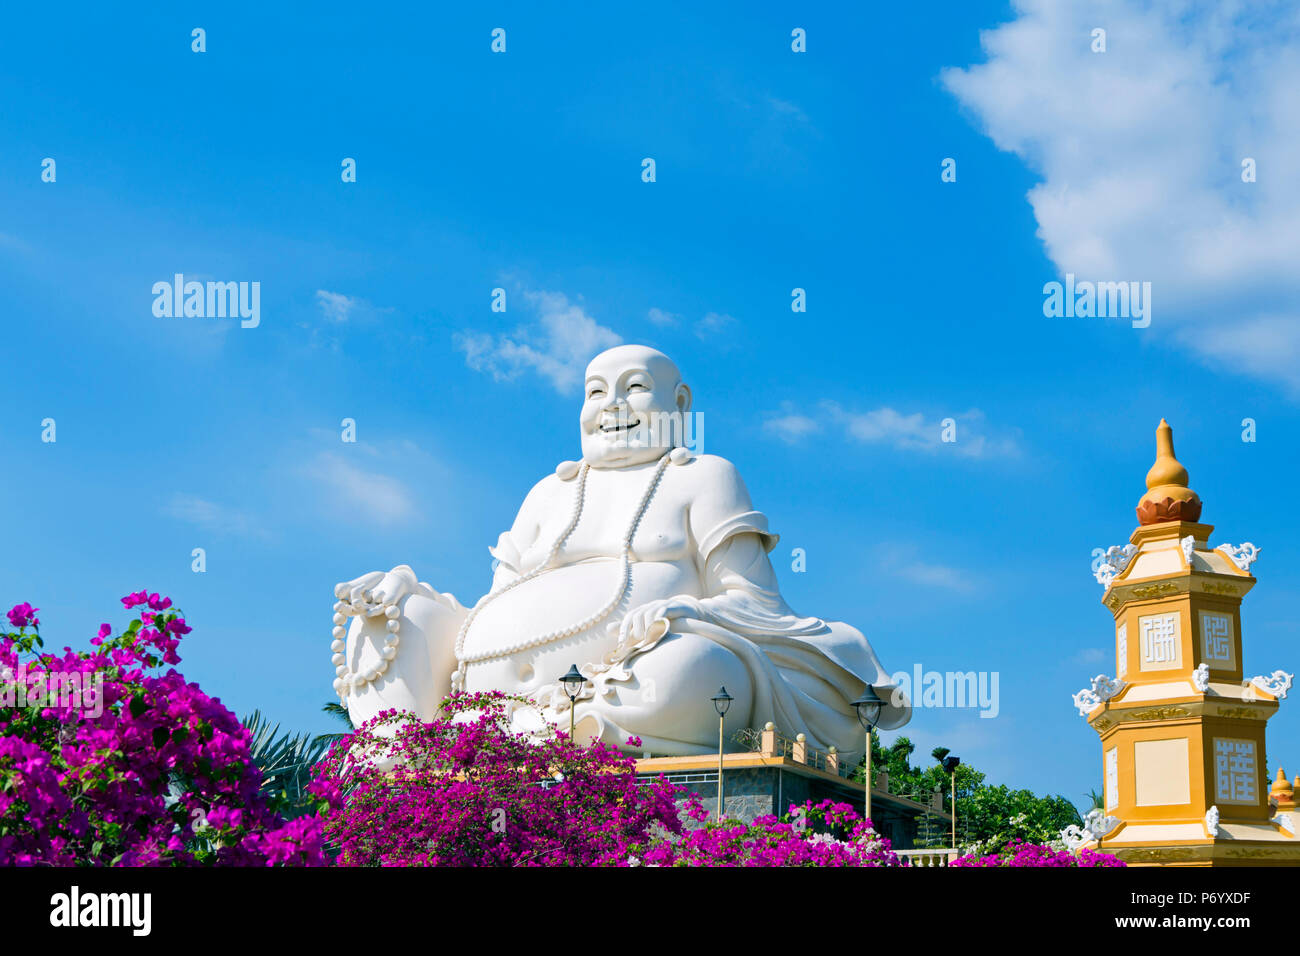 Asia, South East Asia, Vietnam, Mekong Delta, My Tho, Vinh Trang, Buddhist temple - Stock Image